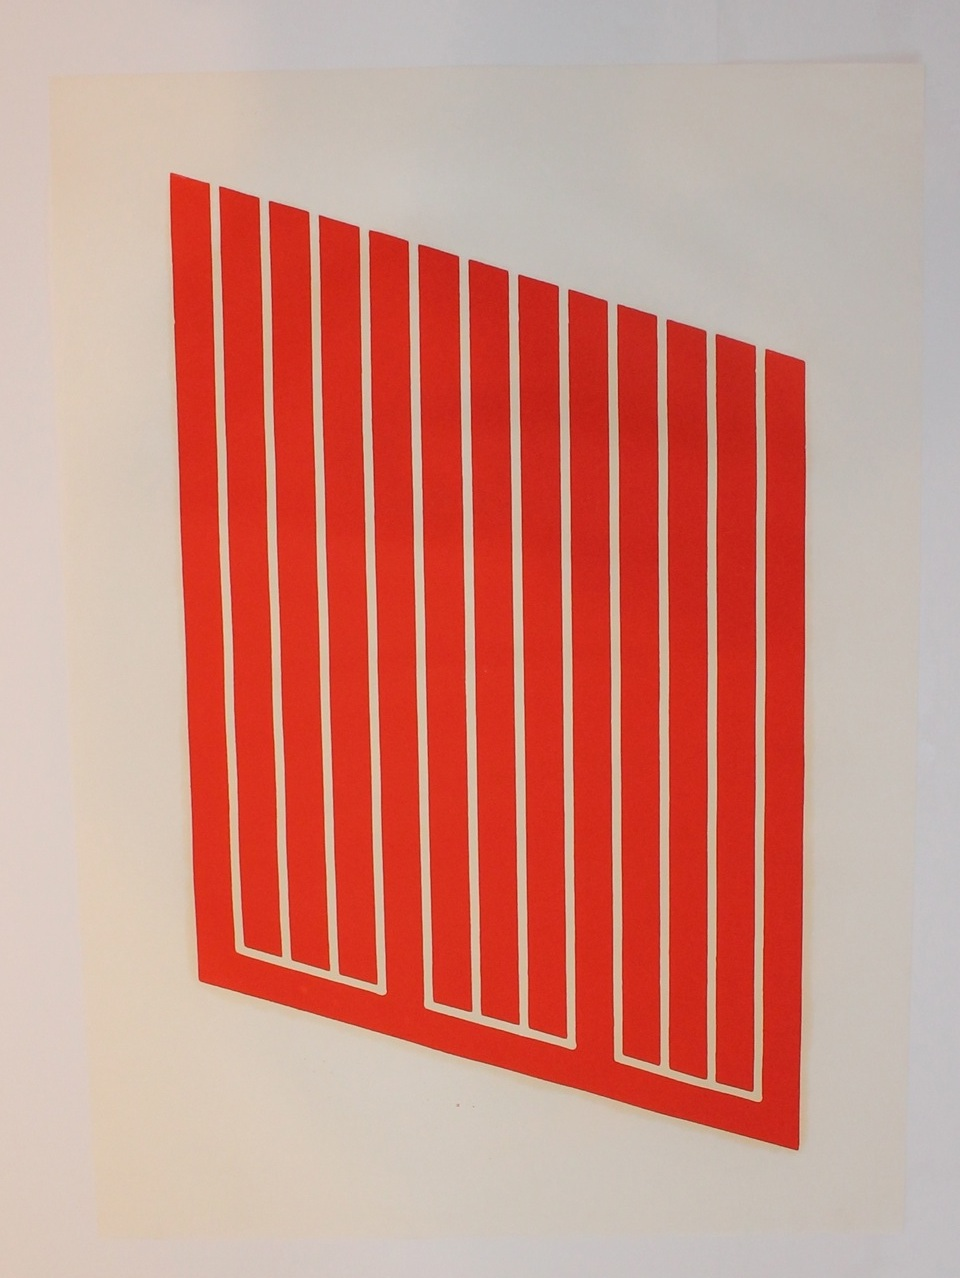 Judd red woodcut.jpg